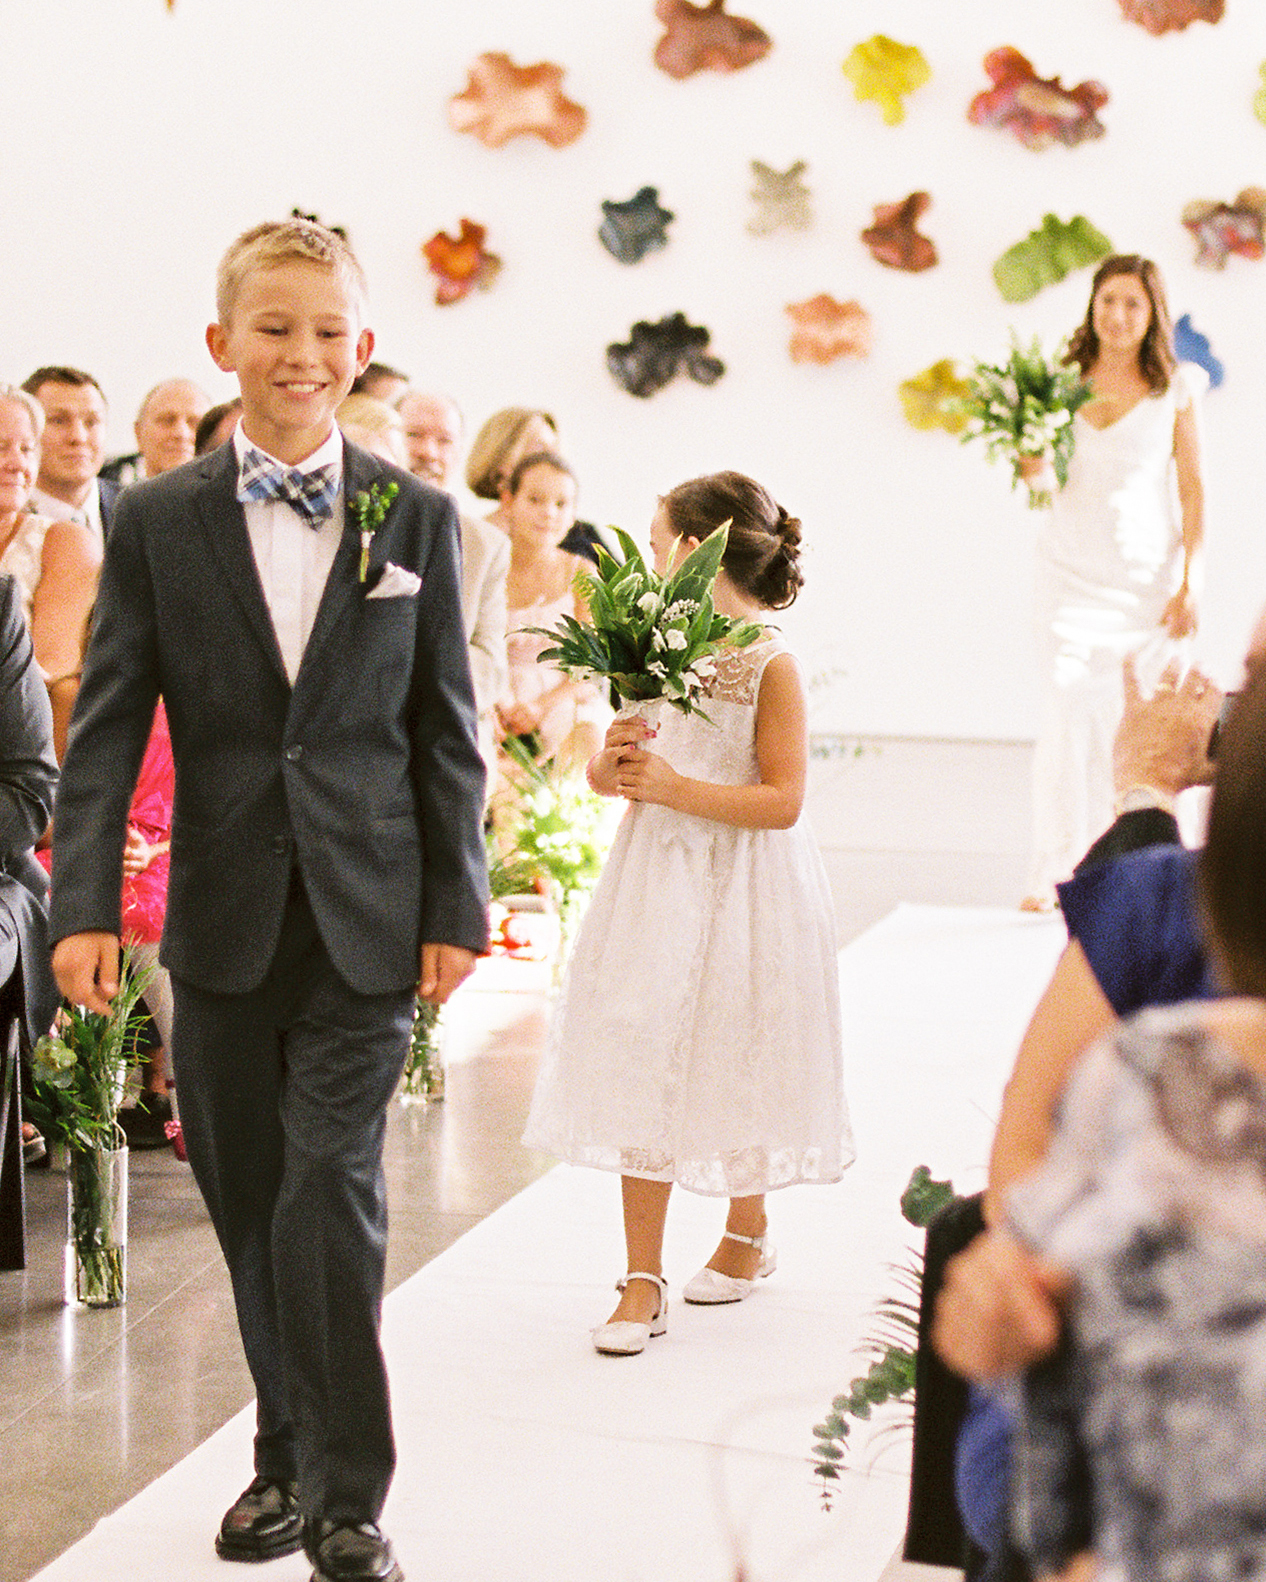 A Basic Wedding Ceremony Outline For Planning The Order Of